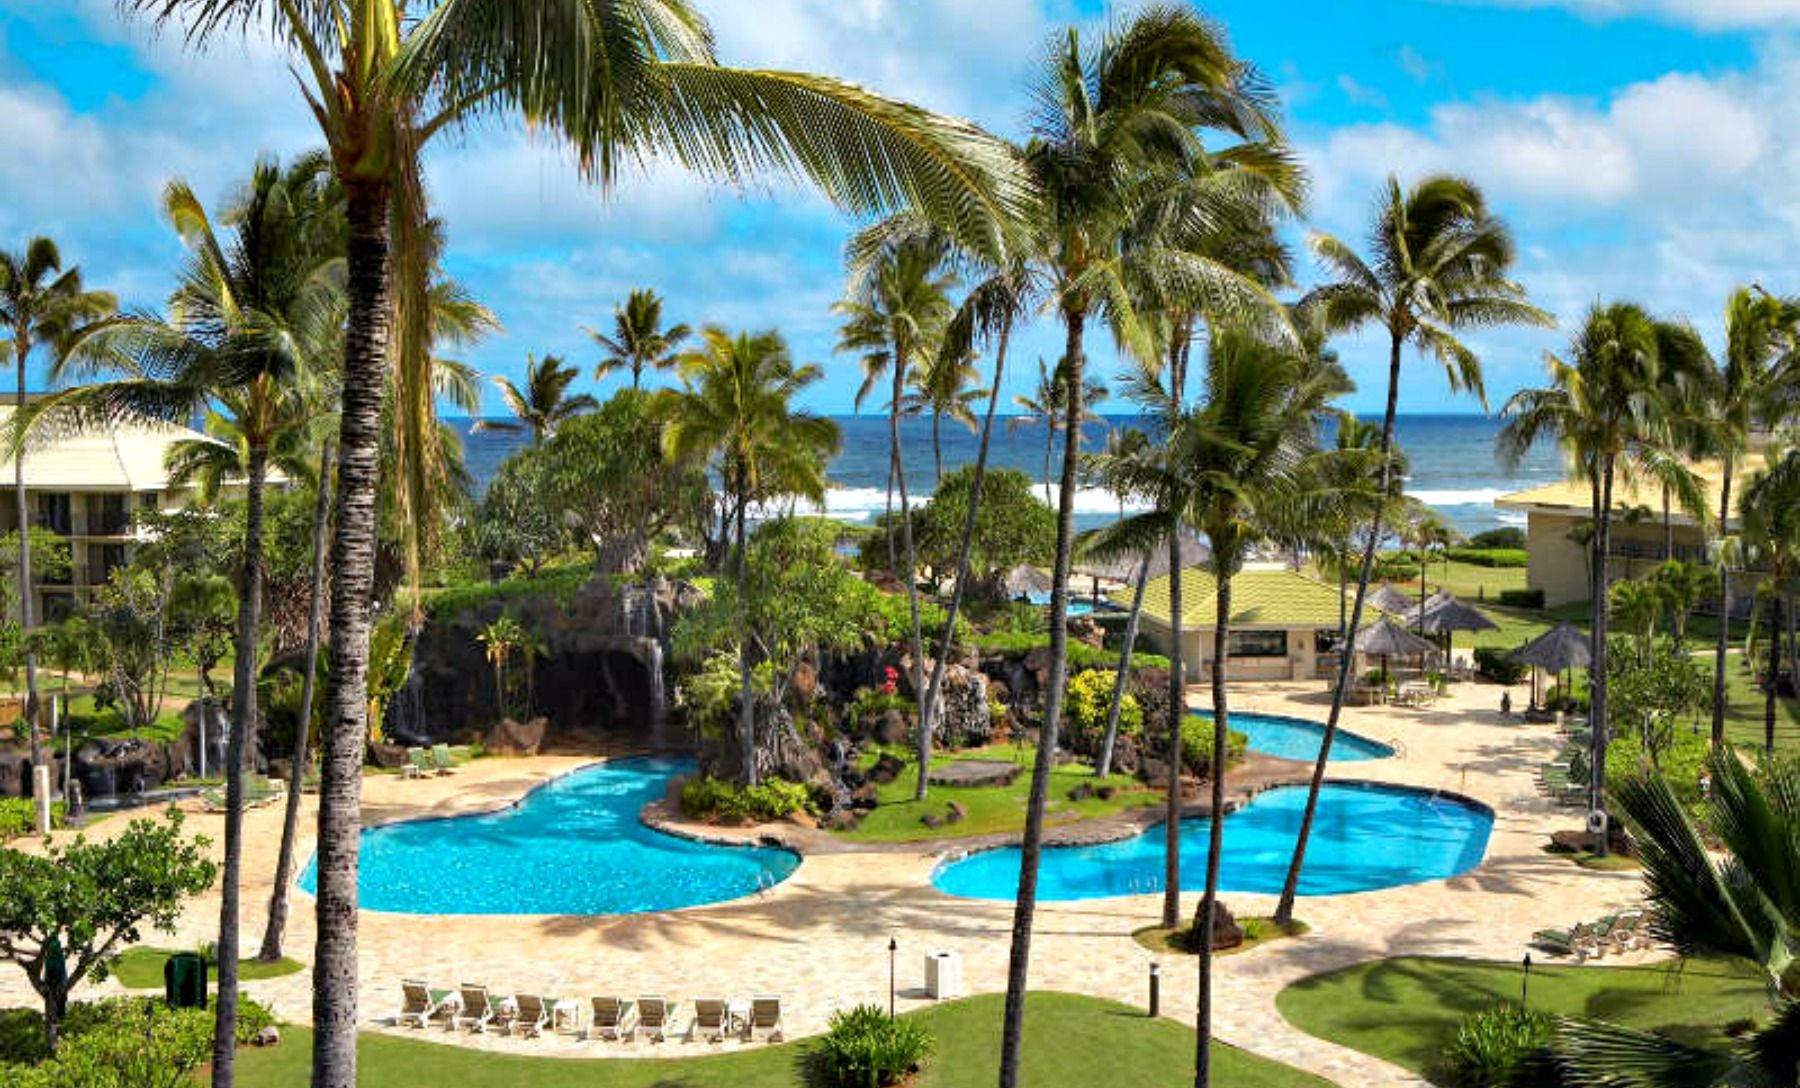 All Inclusive Hawaii Family Vacation Packages With Airfare